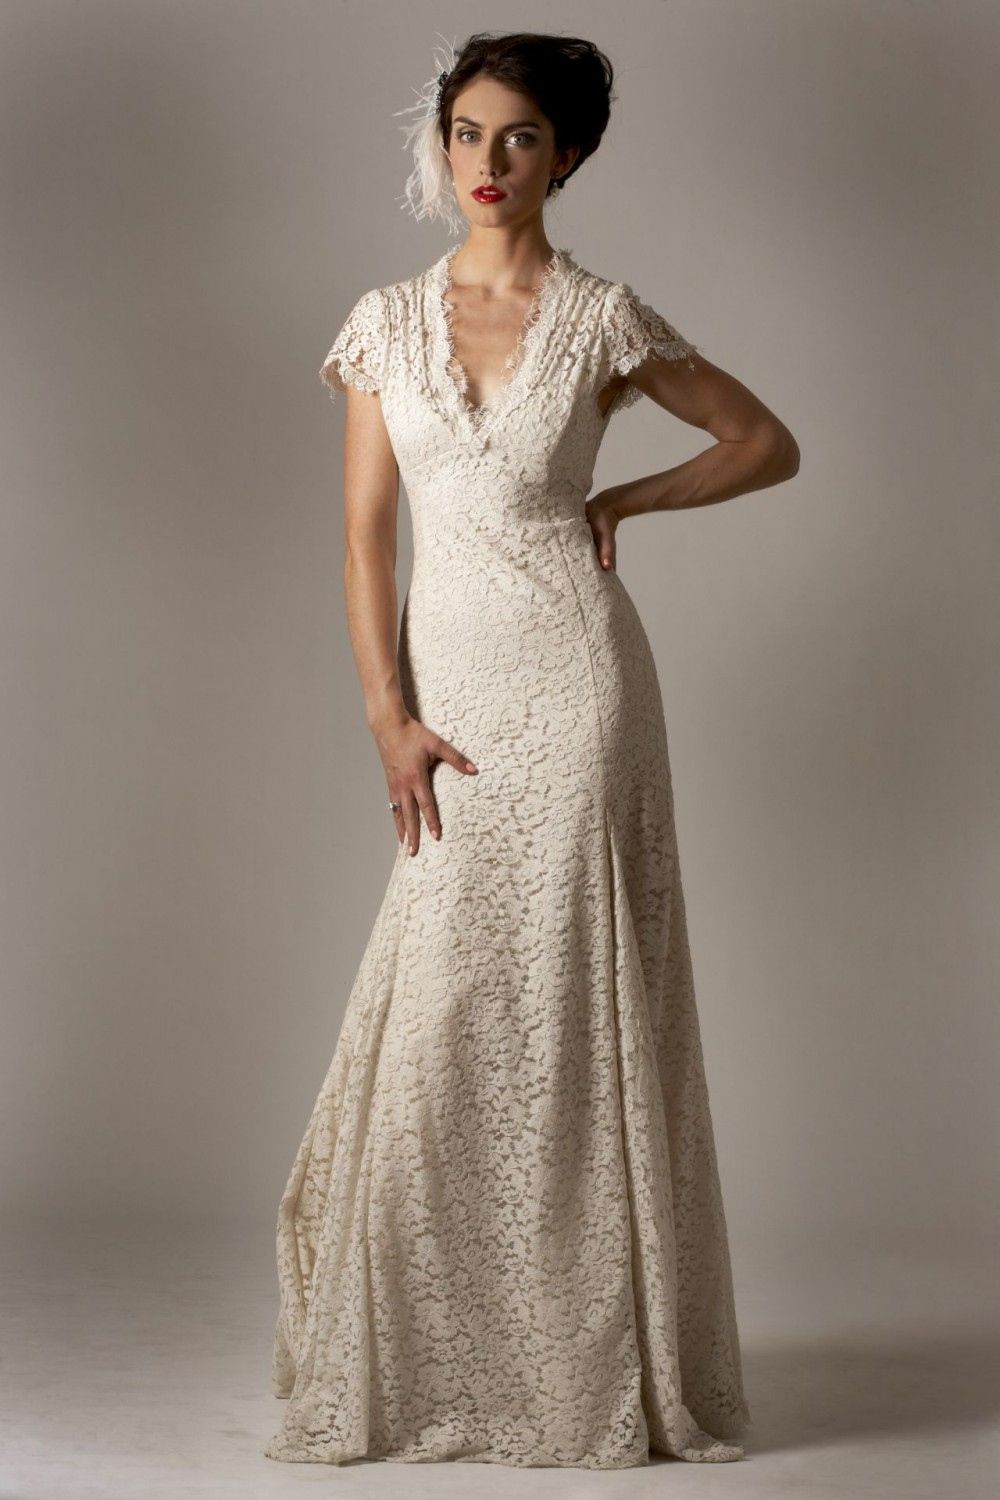 Wedding Dresses For The Over 40s Dress Country Guest Check More At Http